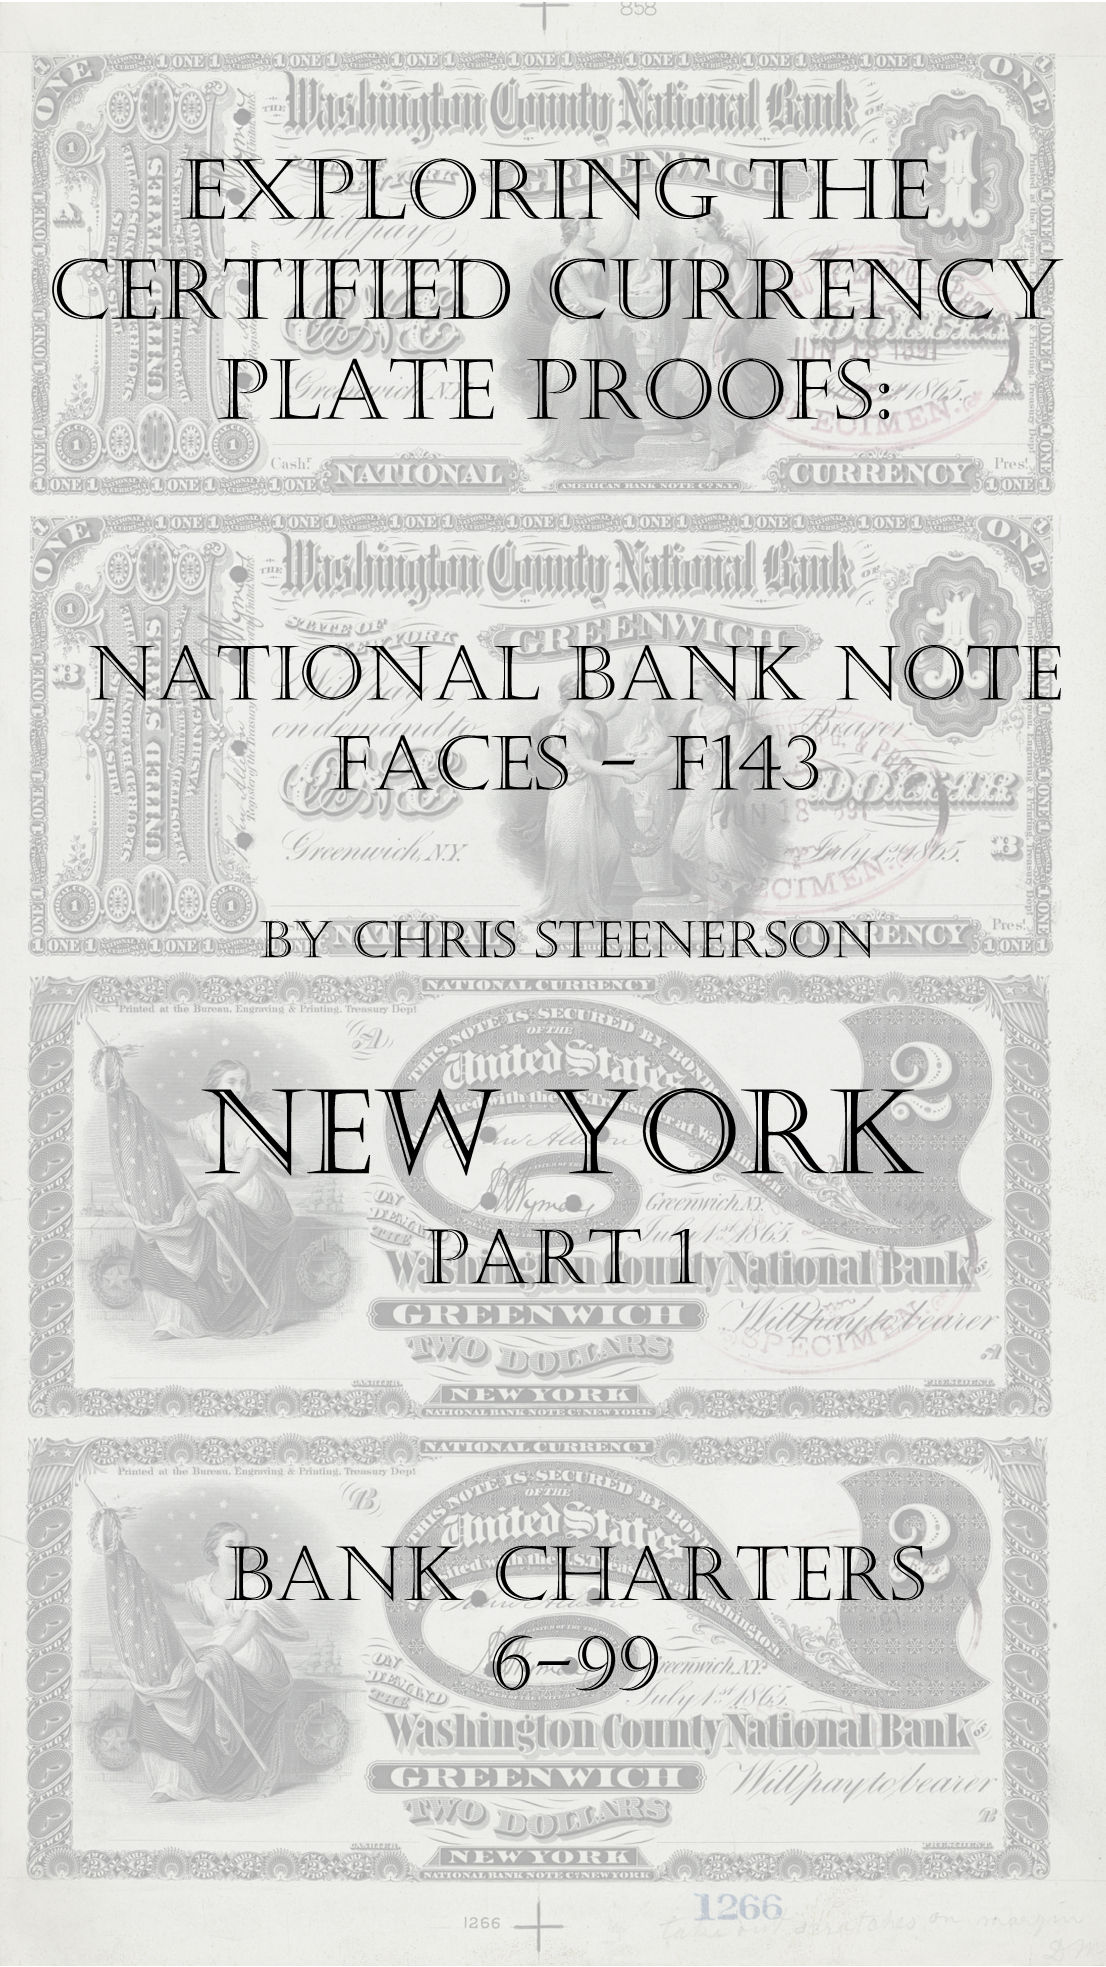 New York National Bank Note Currency Proofs